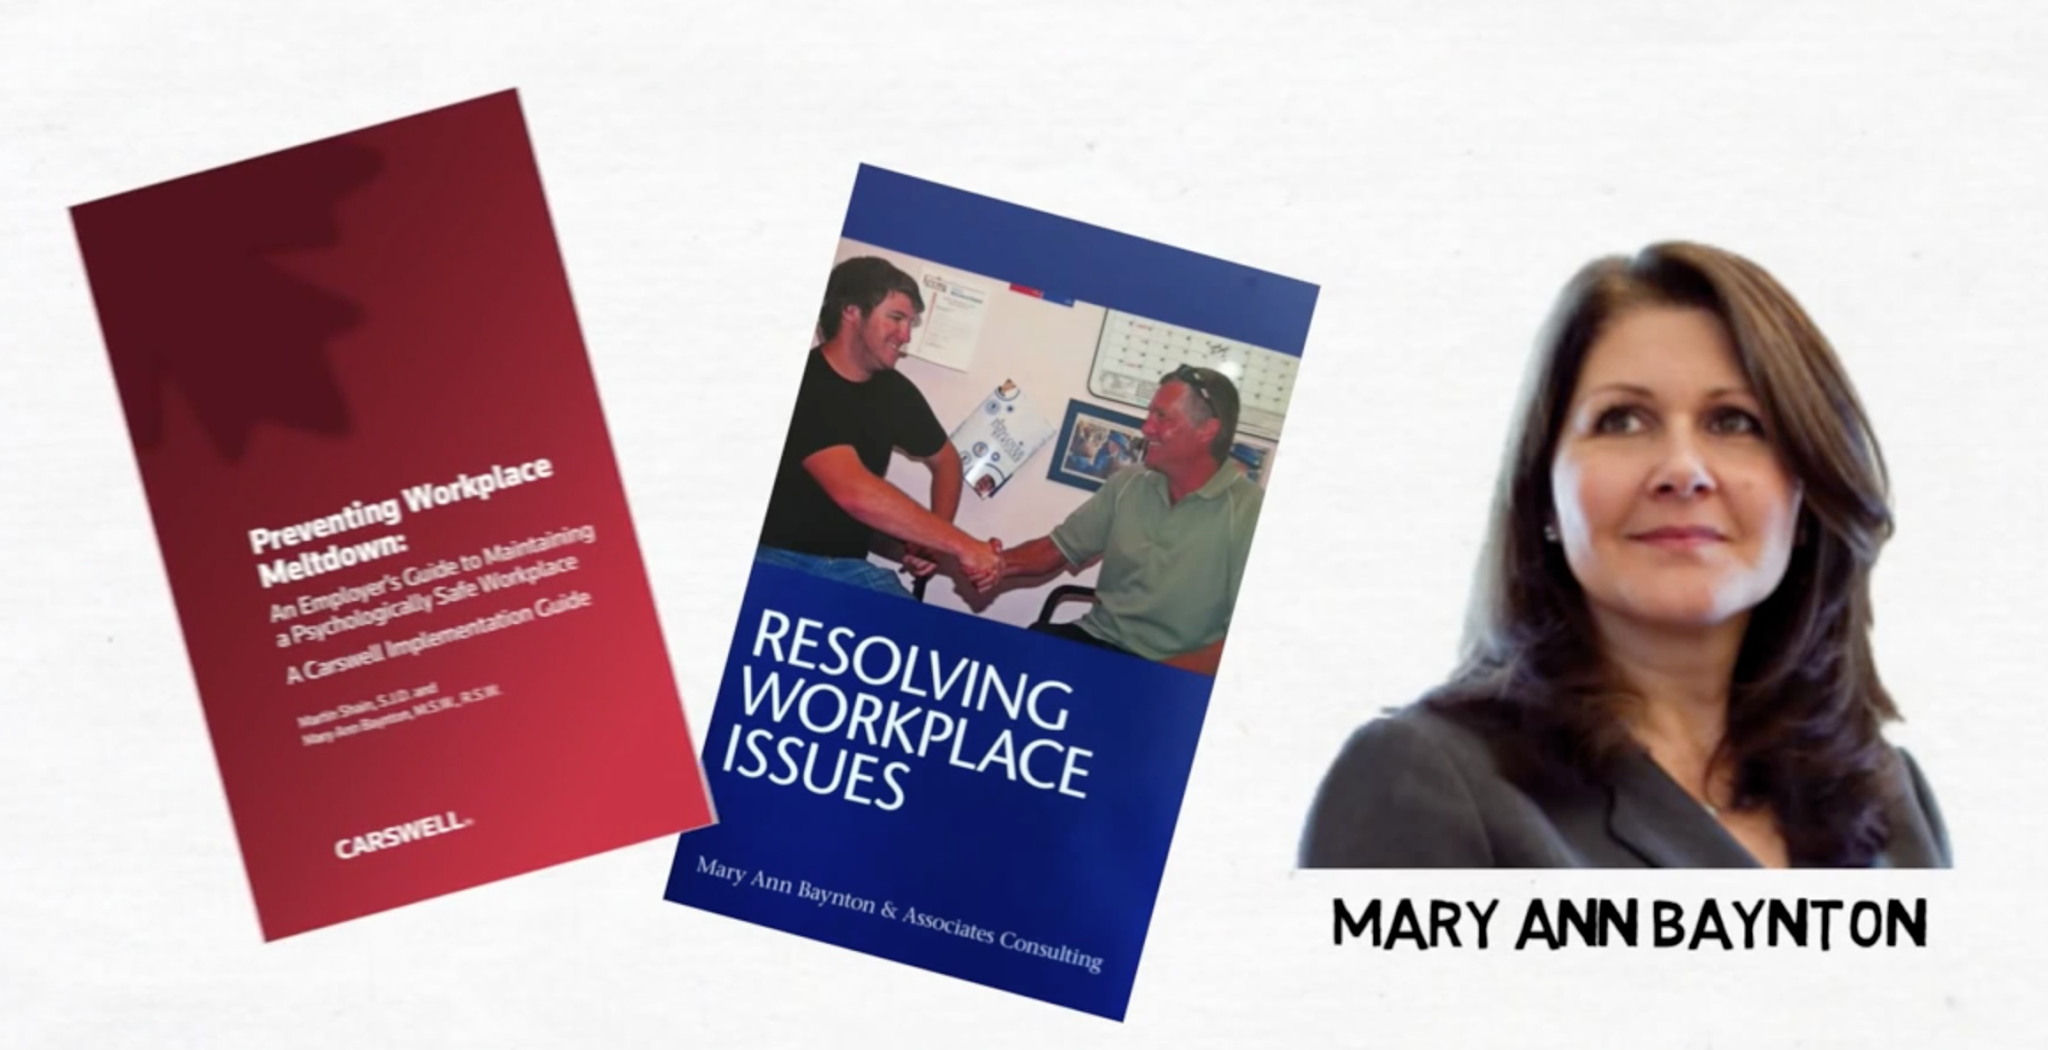 April 9 2014 MaryAnn Bayton Workstress Expert author of books cited in press release will be the keynote speaker  at Solutions 2 Work Stress Workshop presented by HKLPR Health Unit